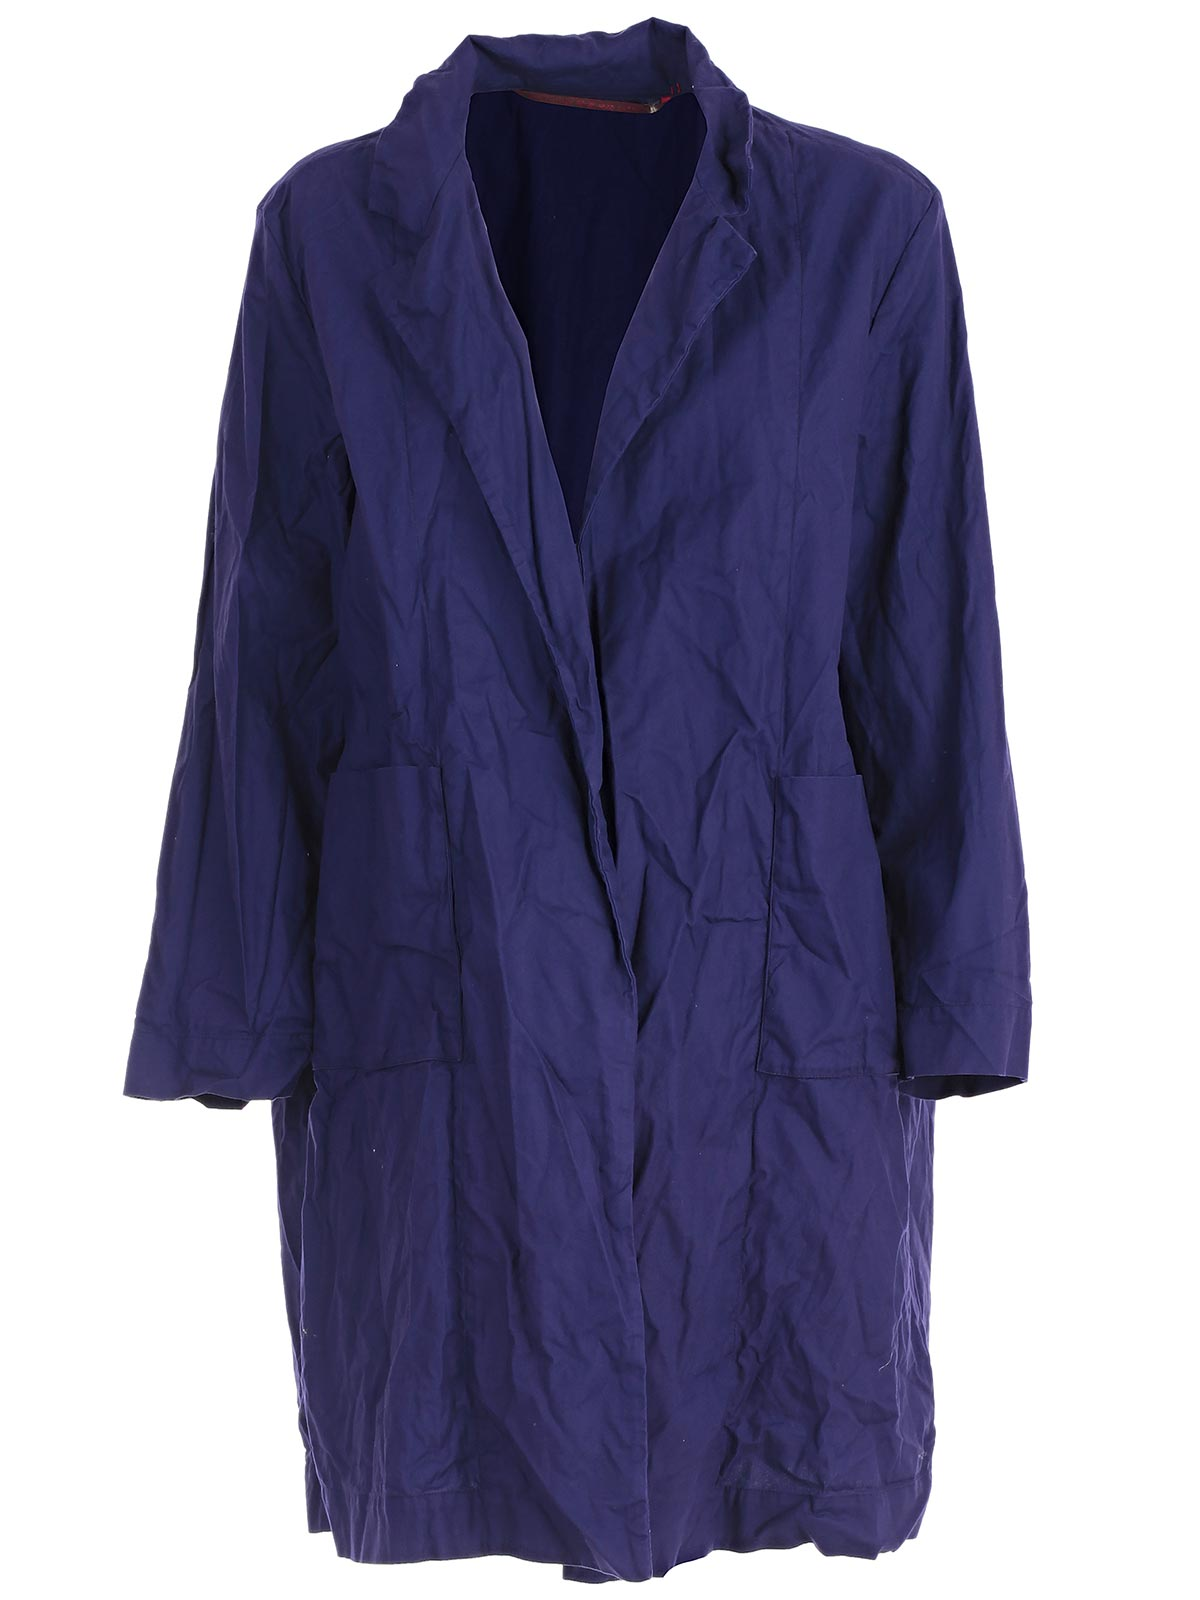 Picture of Daniela Gregis Trench